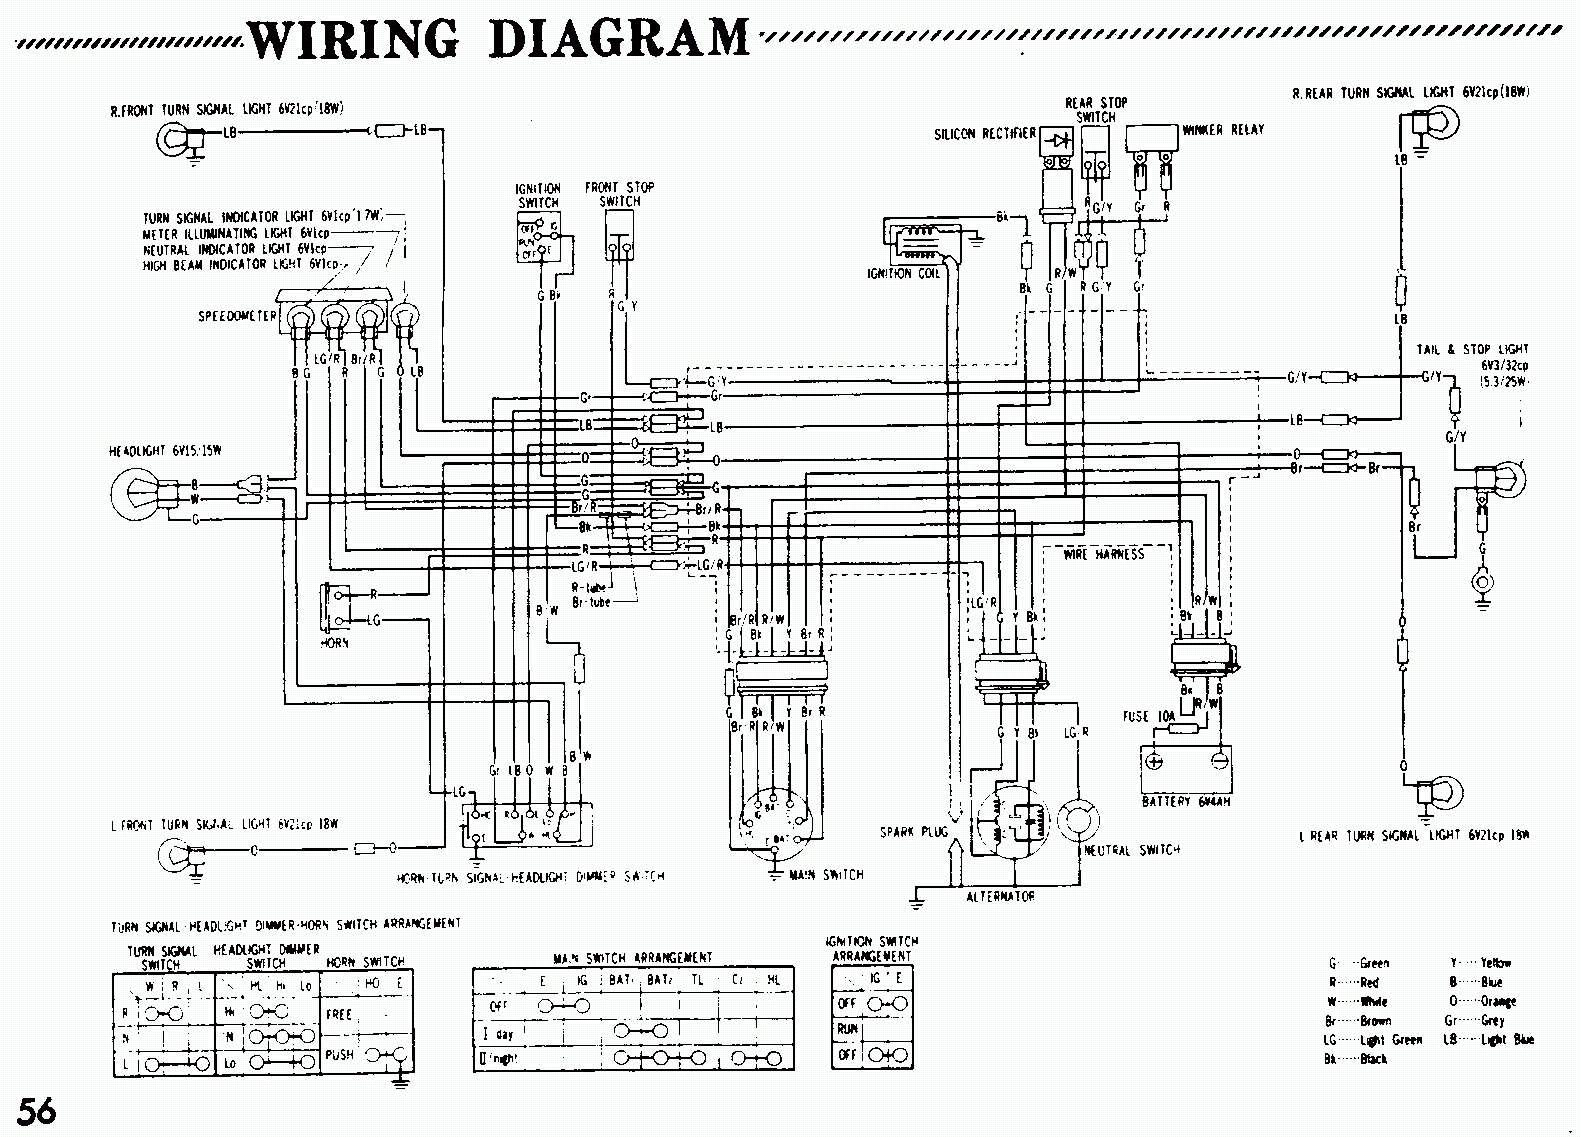 honda ct70 1976 wiring diagram honda z50 k3 wiring diagram honda wiring diagrams instruction honda c70 wiring diagram at alyssarenee.co